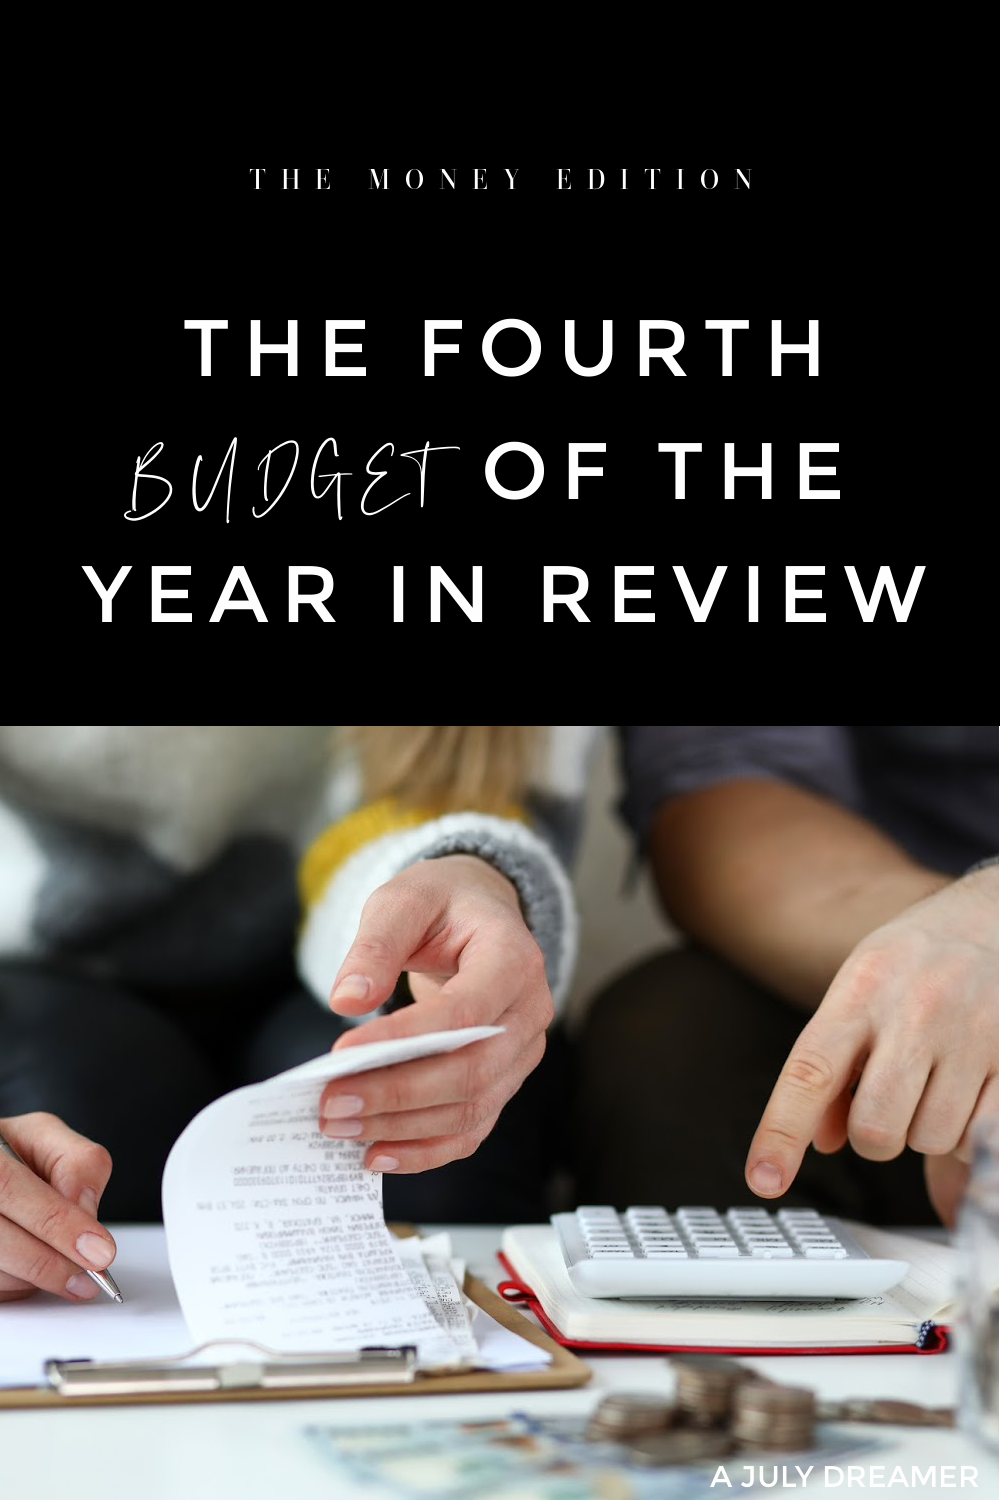 The start of a new month signals it's time to share the fourth budget of the year in review, a new series that I started at the beginning of the year as a way to share how I budget and manage my money. The fourth month of the year was the most fun one even though I blew my budget in most areas.